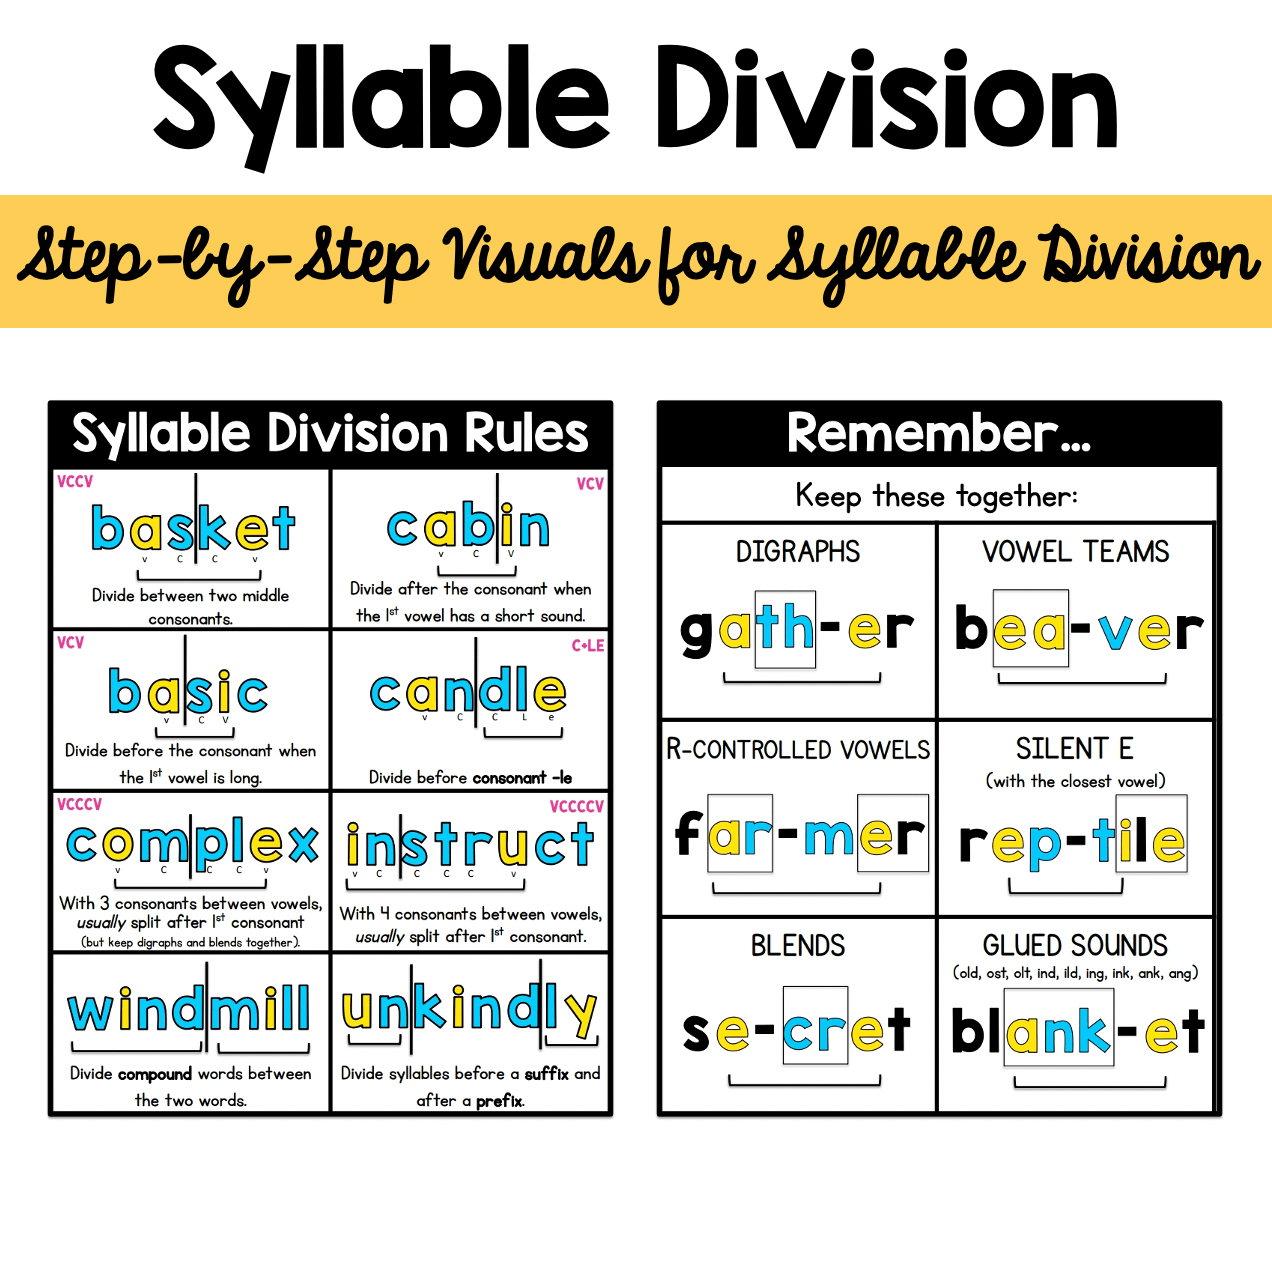 hight resolution of Syllable Division Rules - Sarah's Teaching Snippets